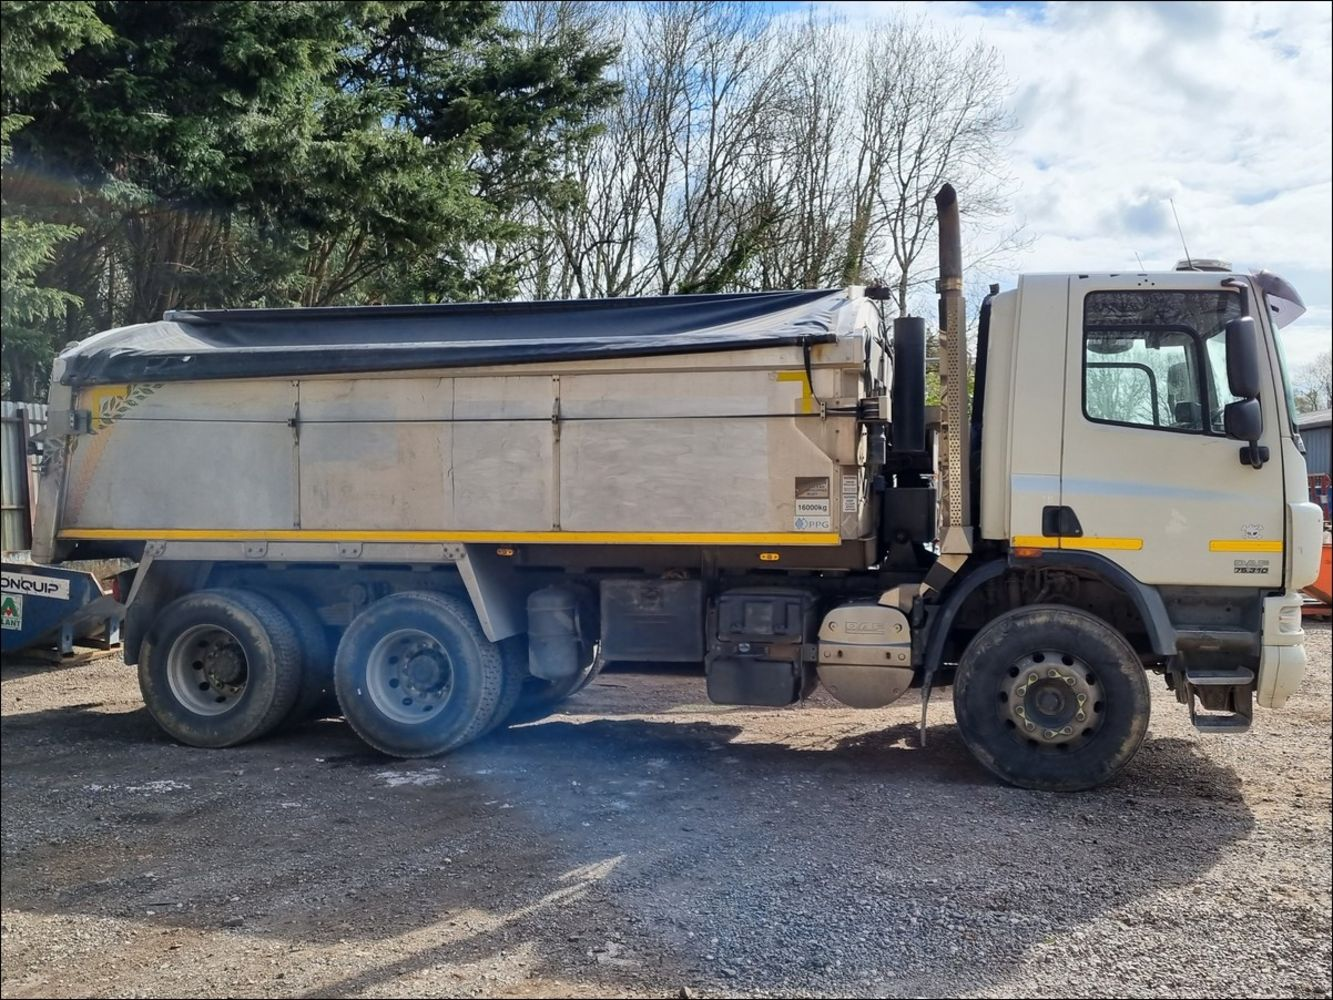 Online Auction of Contractors Plant, HGVs, Farm & Groundcare Machinery, Trailers, Compressors, Generators, Power & Garden Tools and Other Items